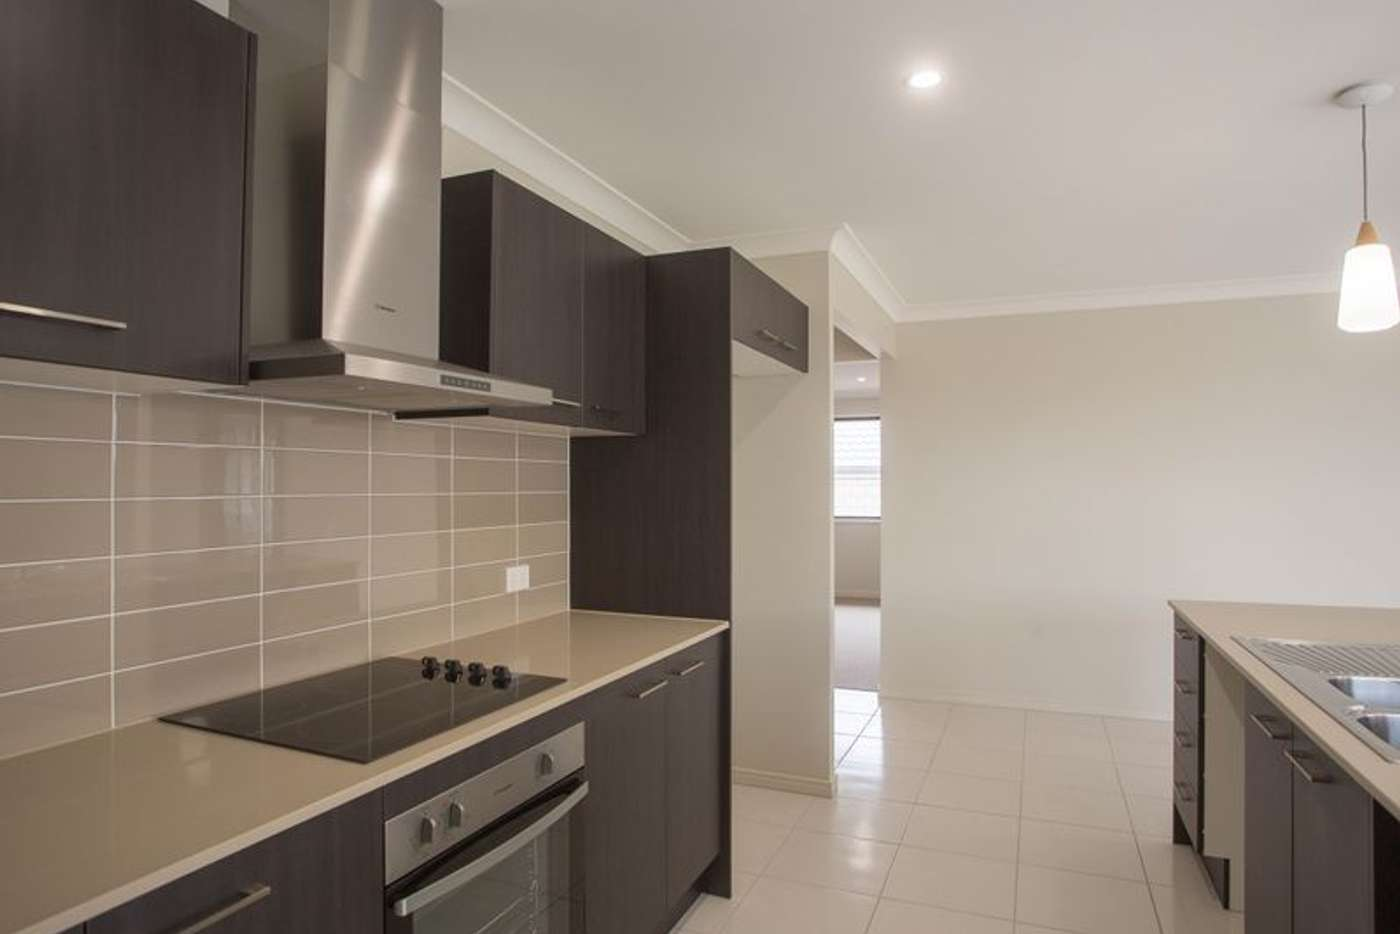 Sixth view of Homely house listing, 13 Richmond Terrace, Plainland QLD 4341